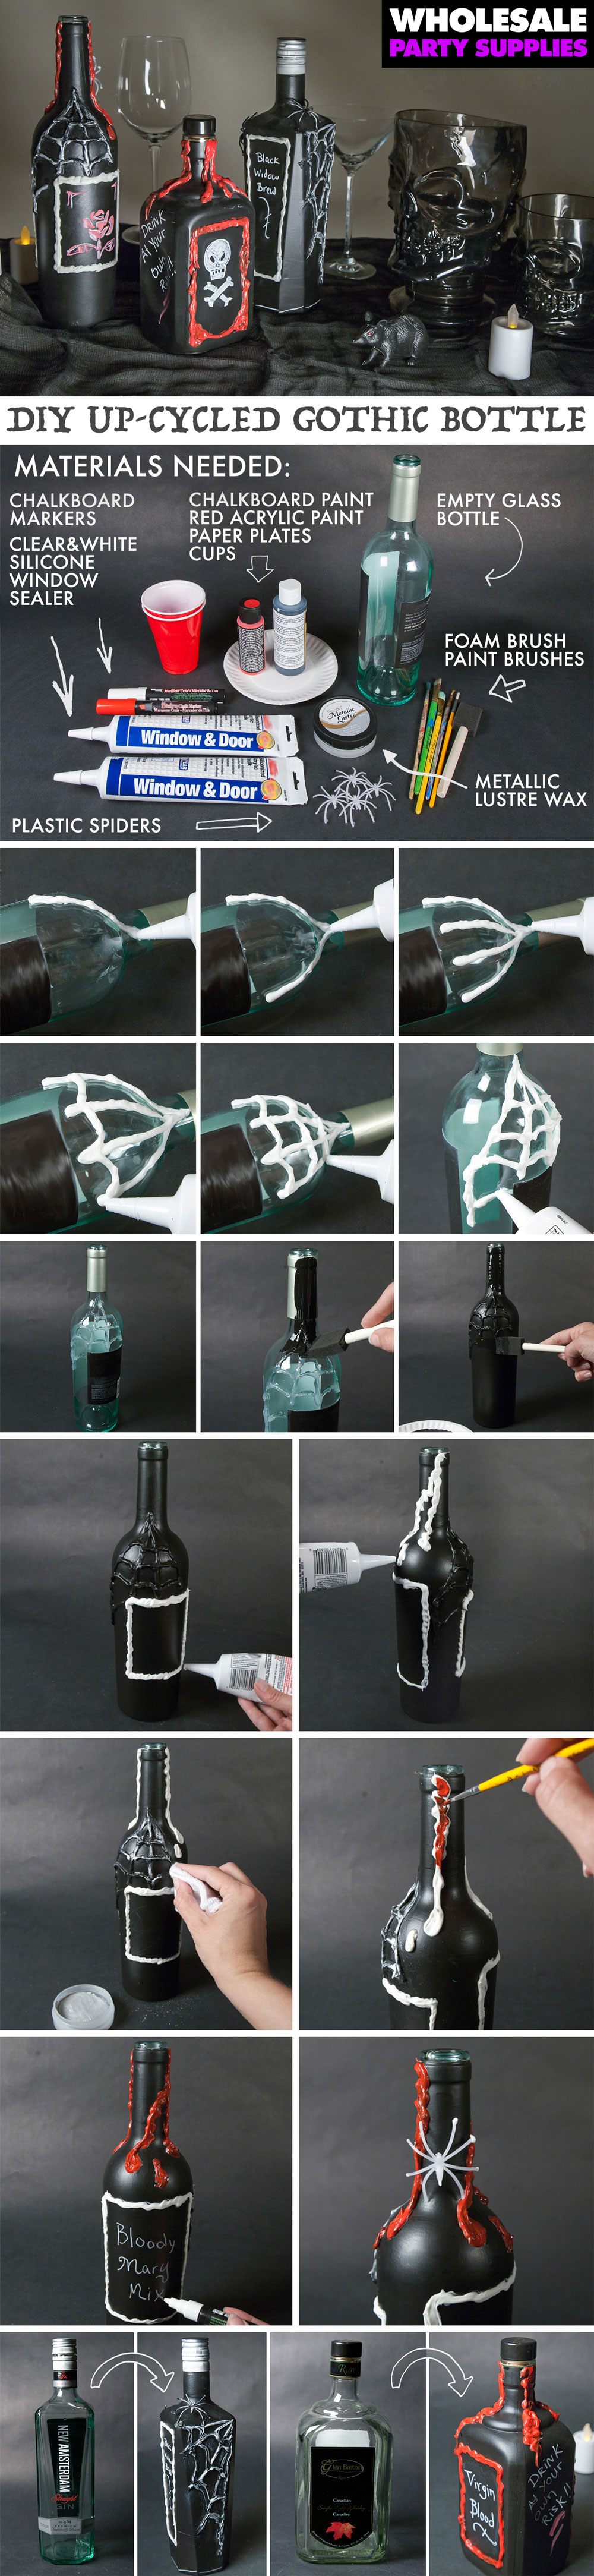 bottle_Steps